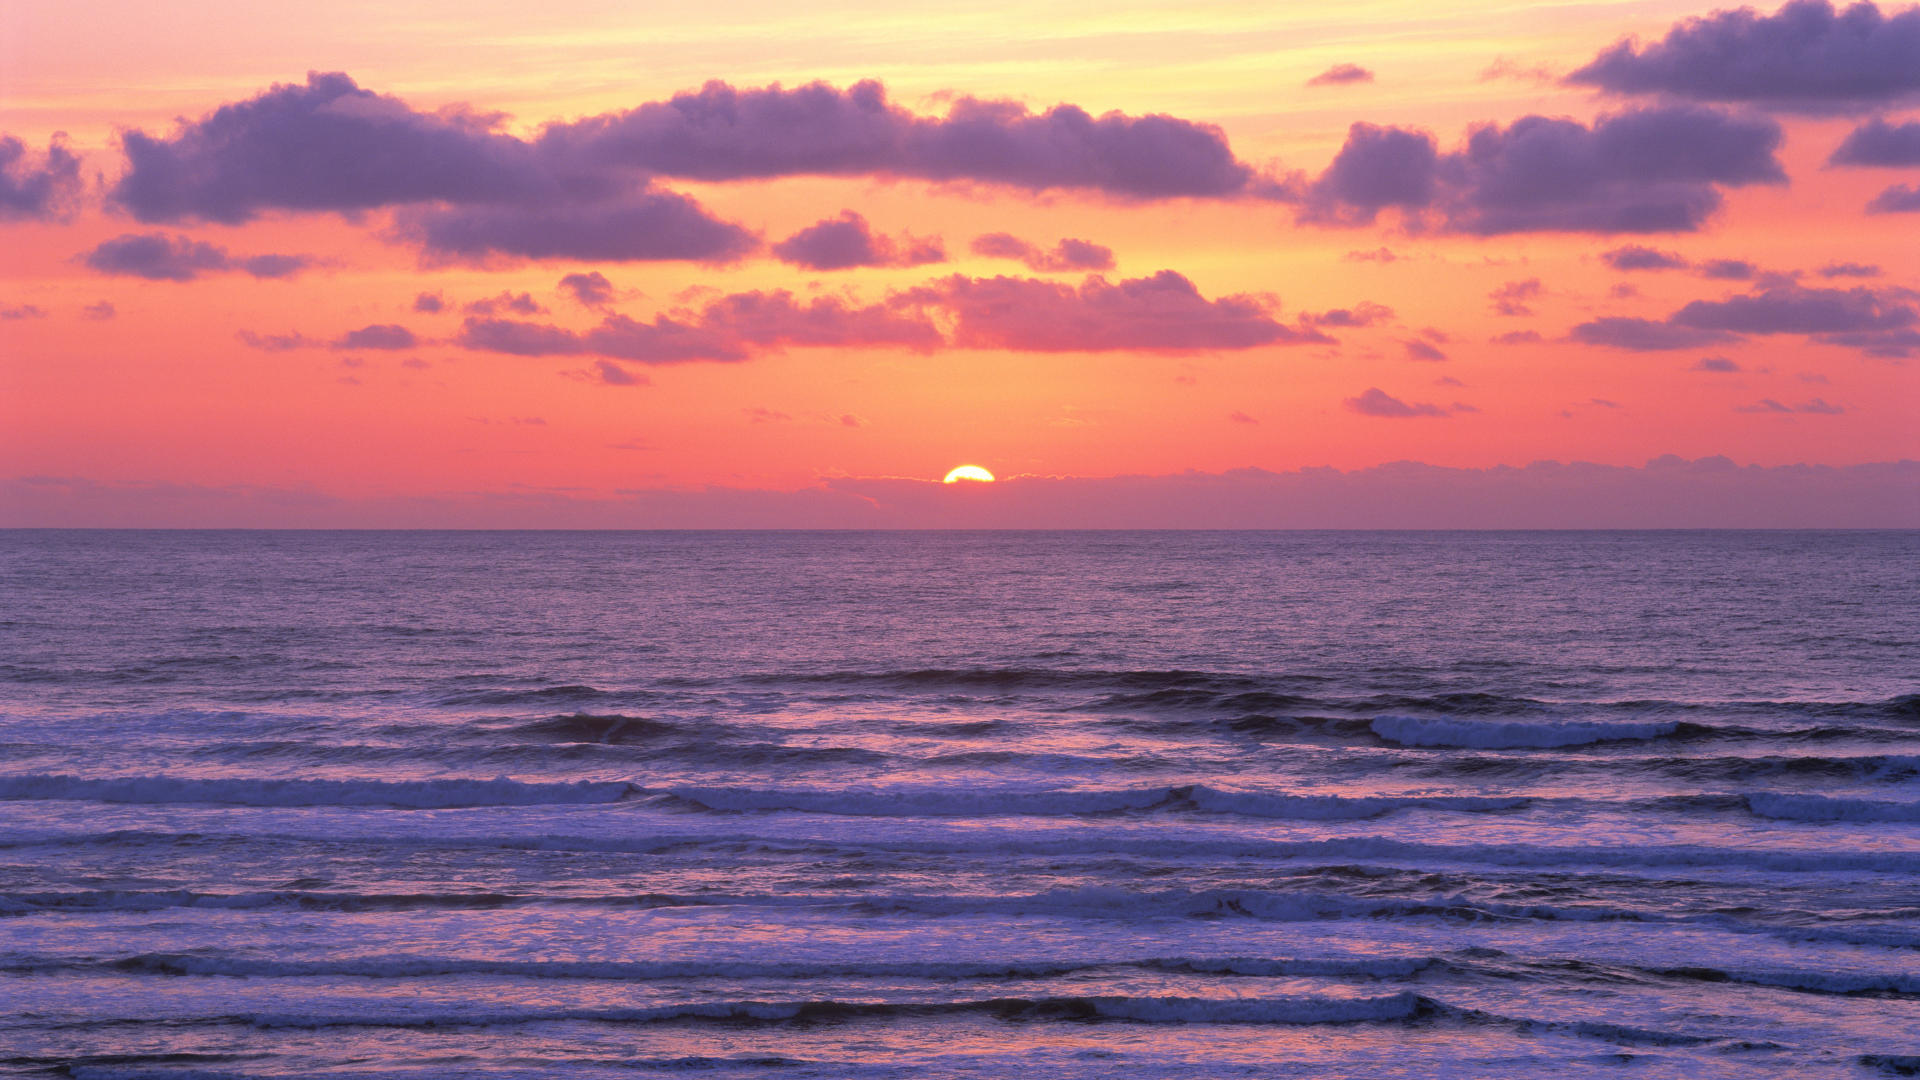 Ocean Sunset Wallpaper Tumblr 2